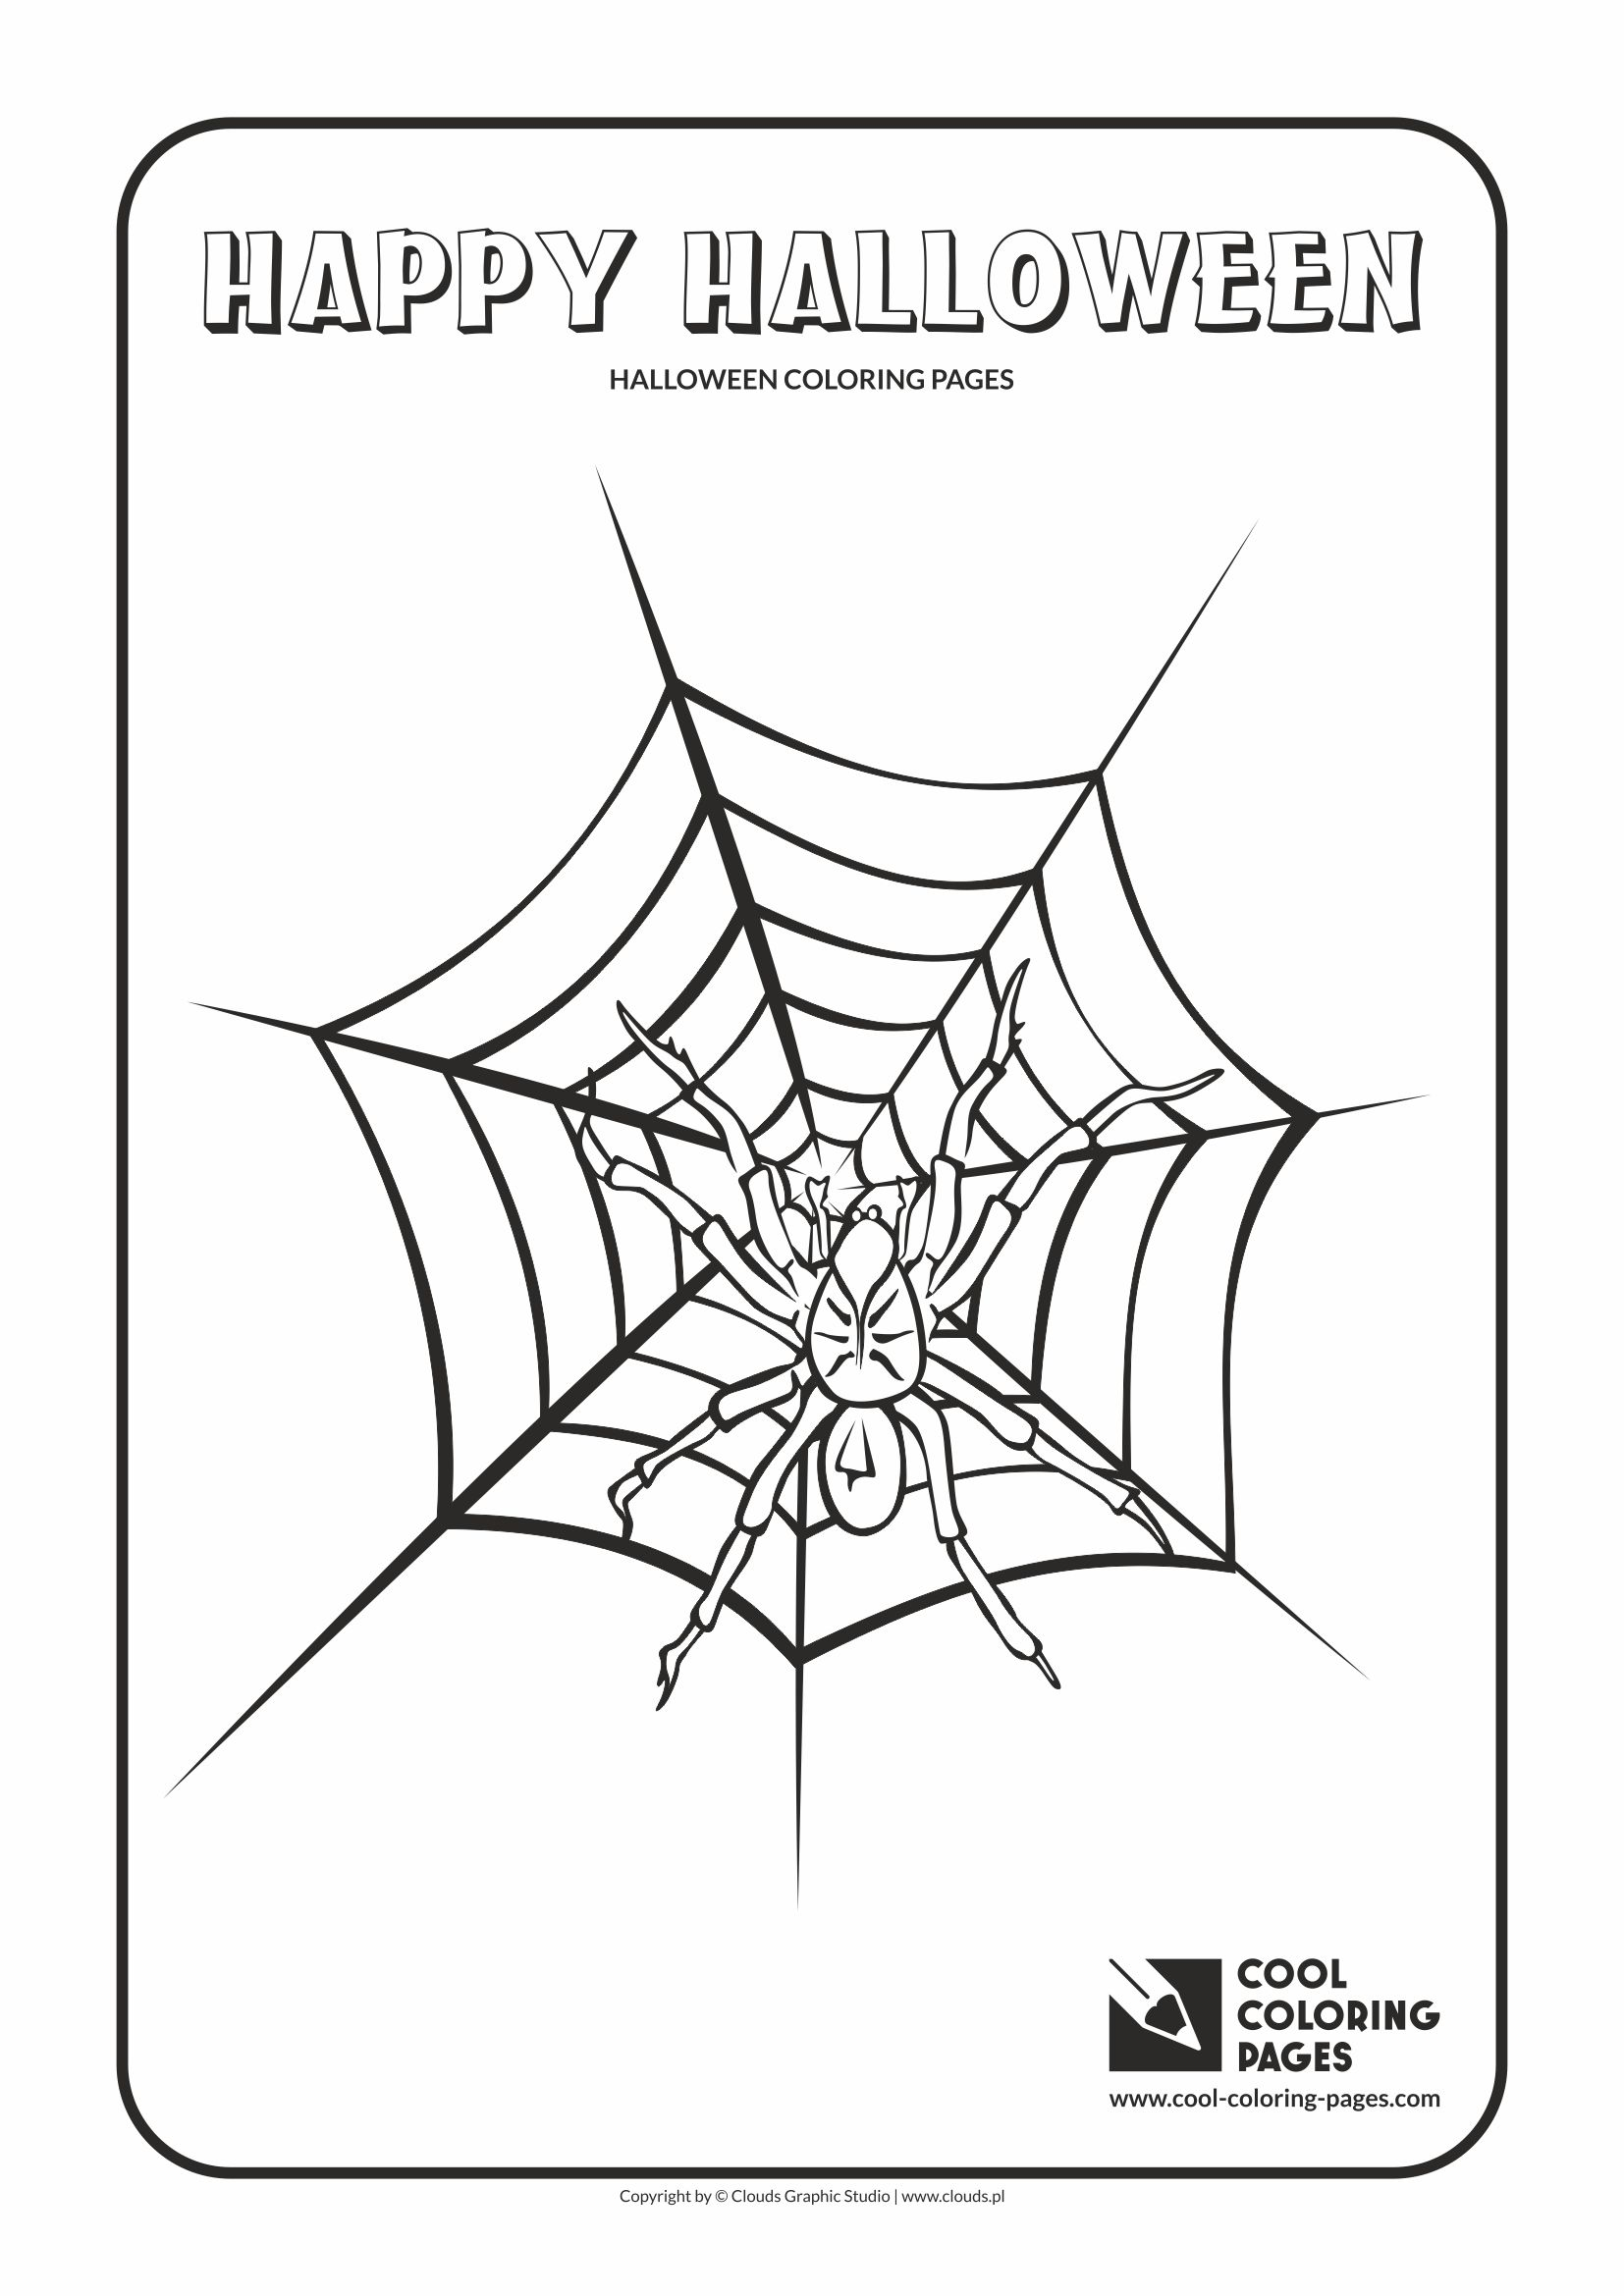 cool coloring pages holidays halloween spider coloring page with halloween spider - Coloring Pages Of Halloween